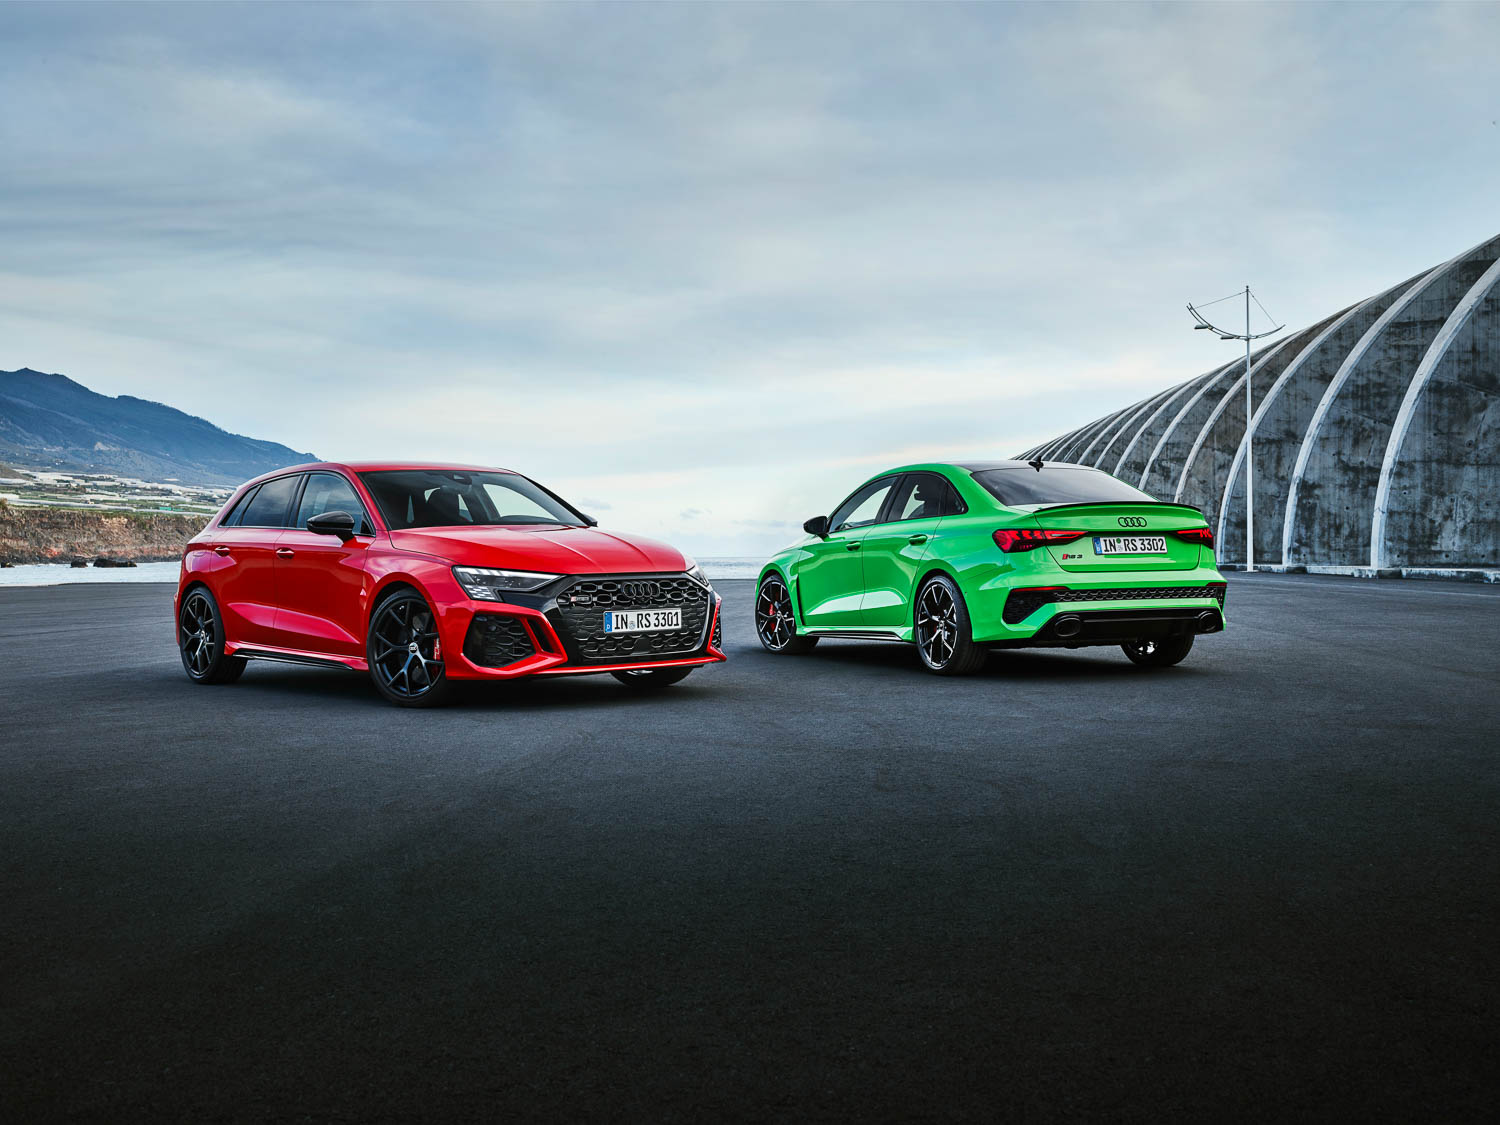 New Audi RS3 drifts into town. Image by Audi.